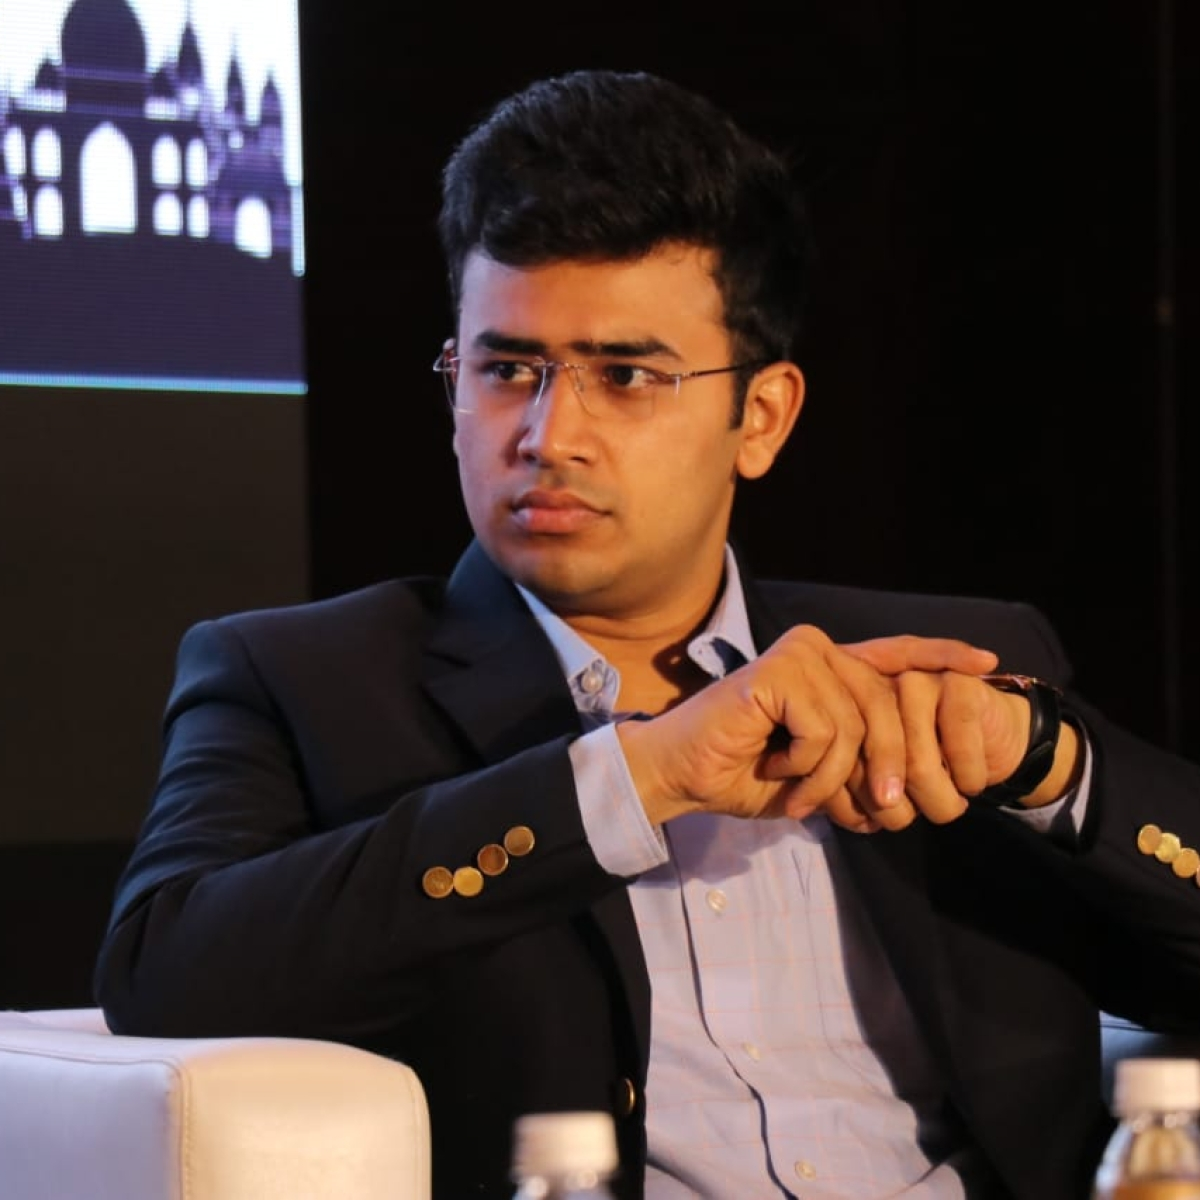 After Tejasvi Surya's deleted 'Arab women orgasm' tweet, five other posts by the BJP leader that didn't age well